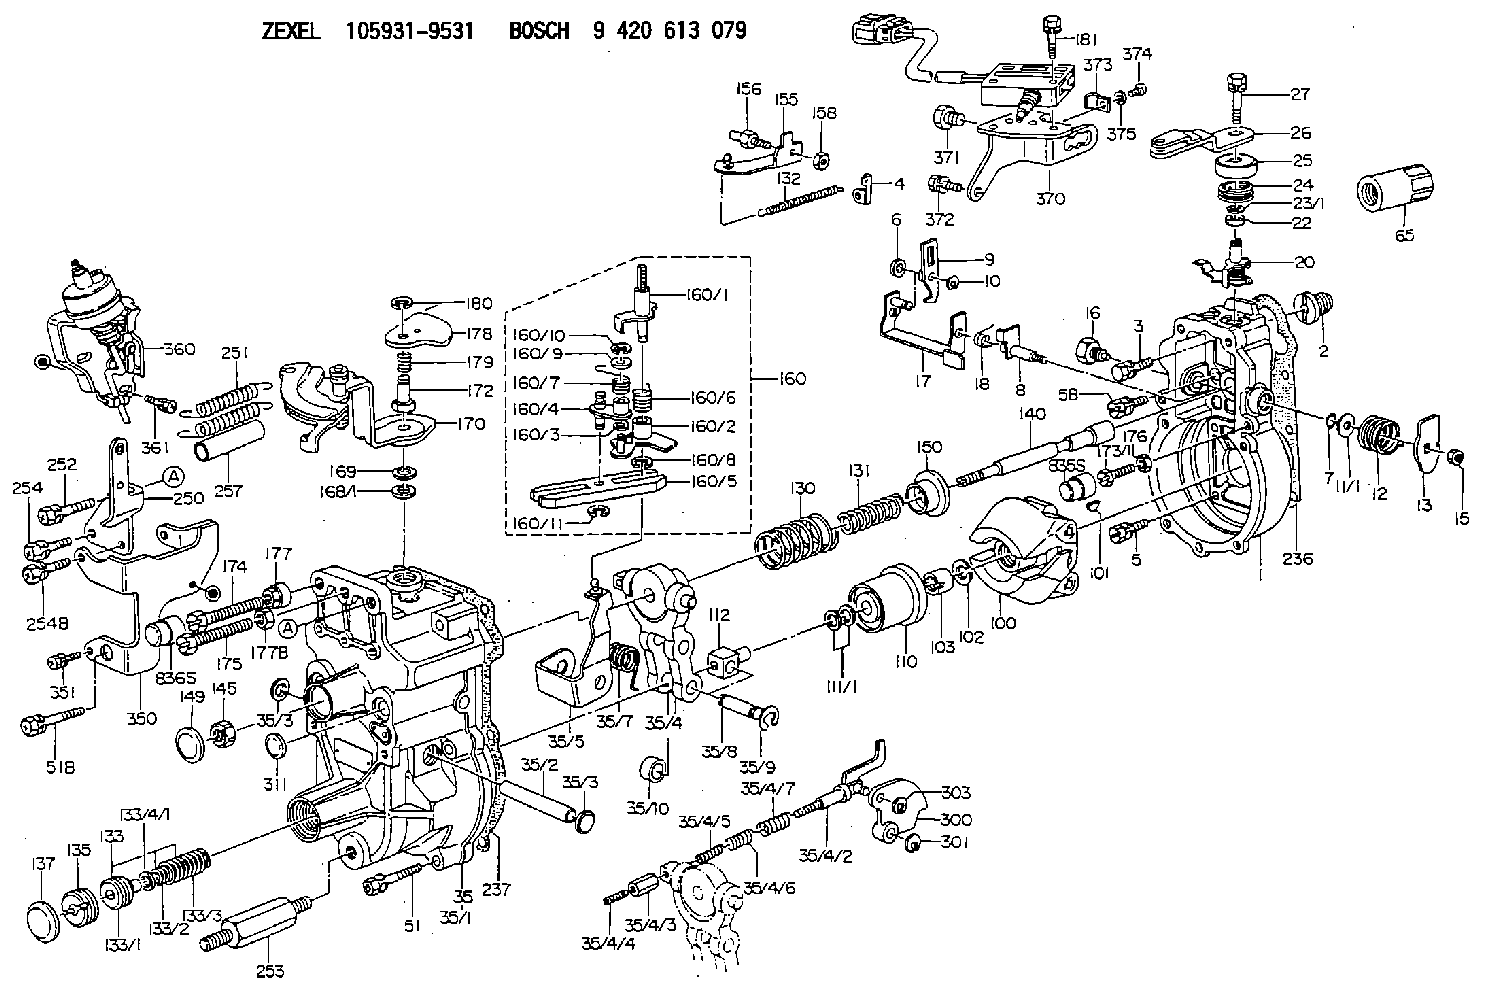 Lexus Ls430 Engine Diagram Html further Wiring A Plug Replacement in addition Replace Hood Release Cable On A 2010 Nissan Frontier also Isuzu Npr Automatic Transmission Diagram furthermore Suzuki Samurai Engine Gasket Diagram. on lexus throttle body replacement